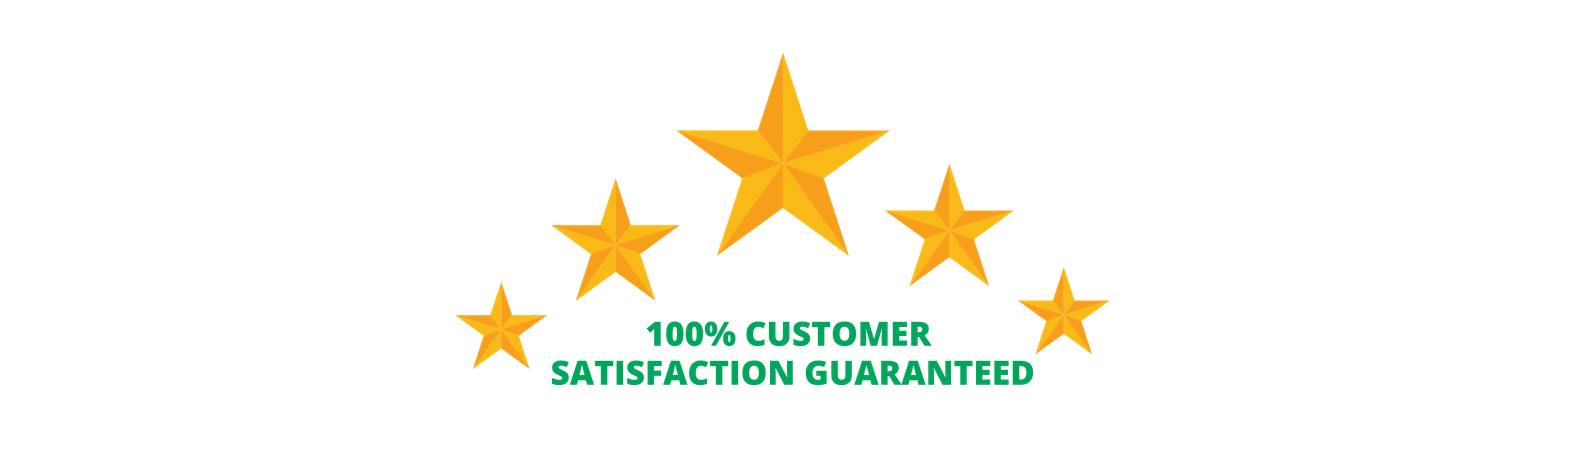 customer satisfaction- wificandy